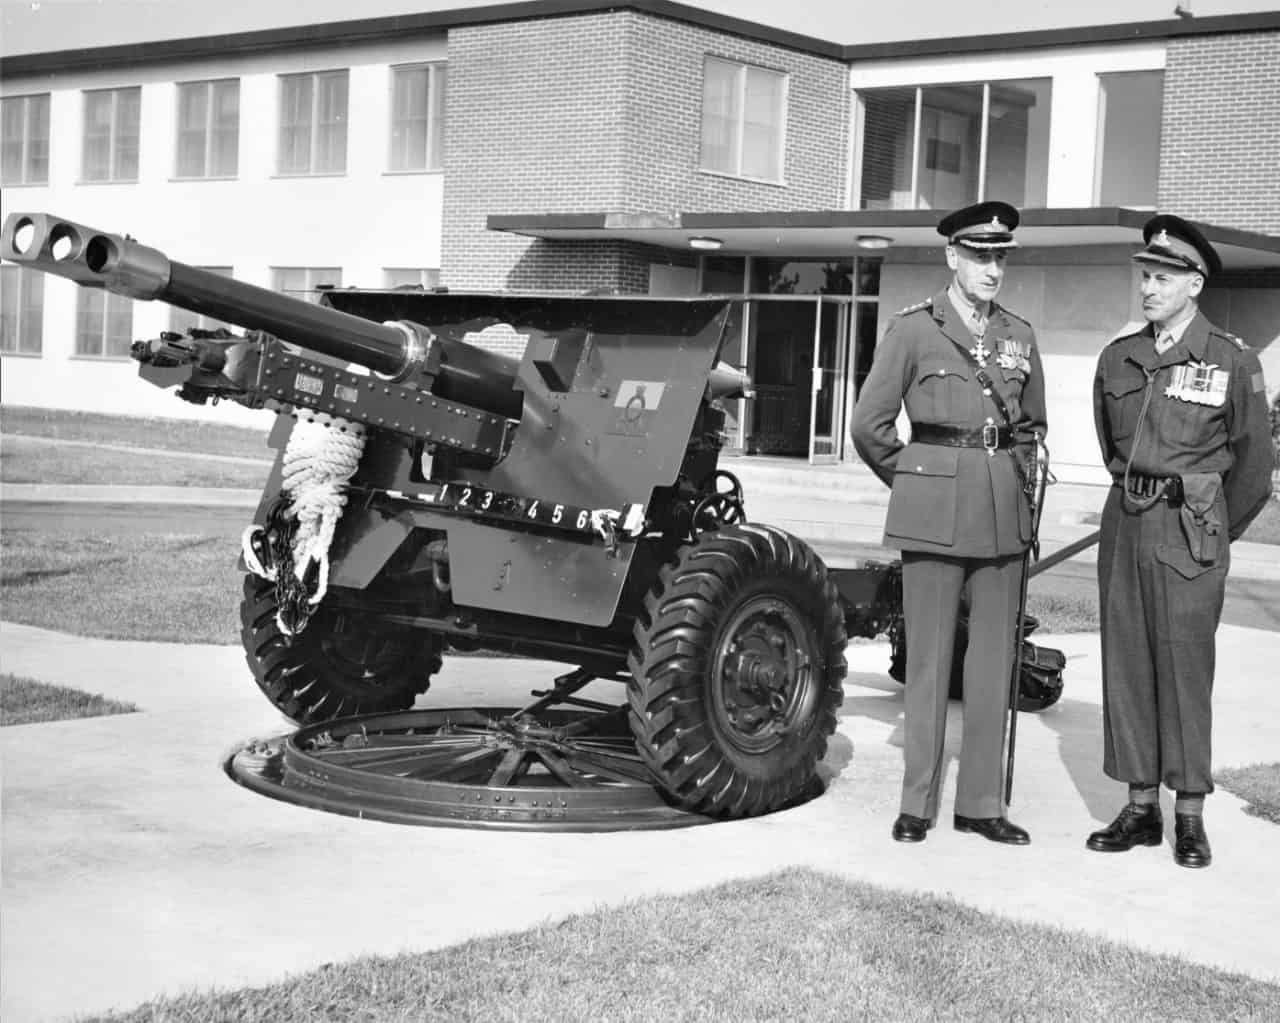 Brig-General-Todd-1962-with-25-Pounder